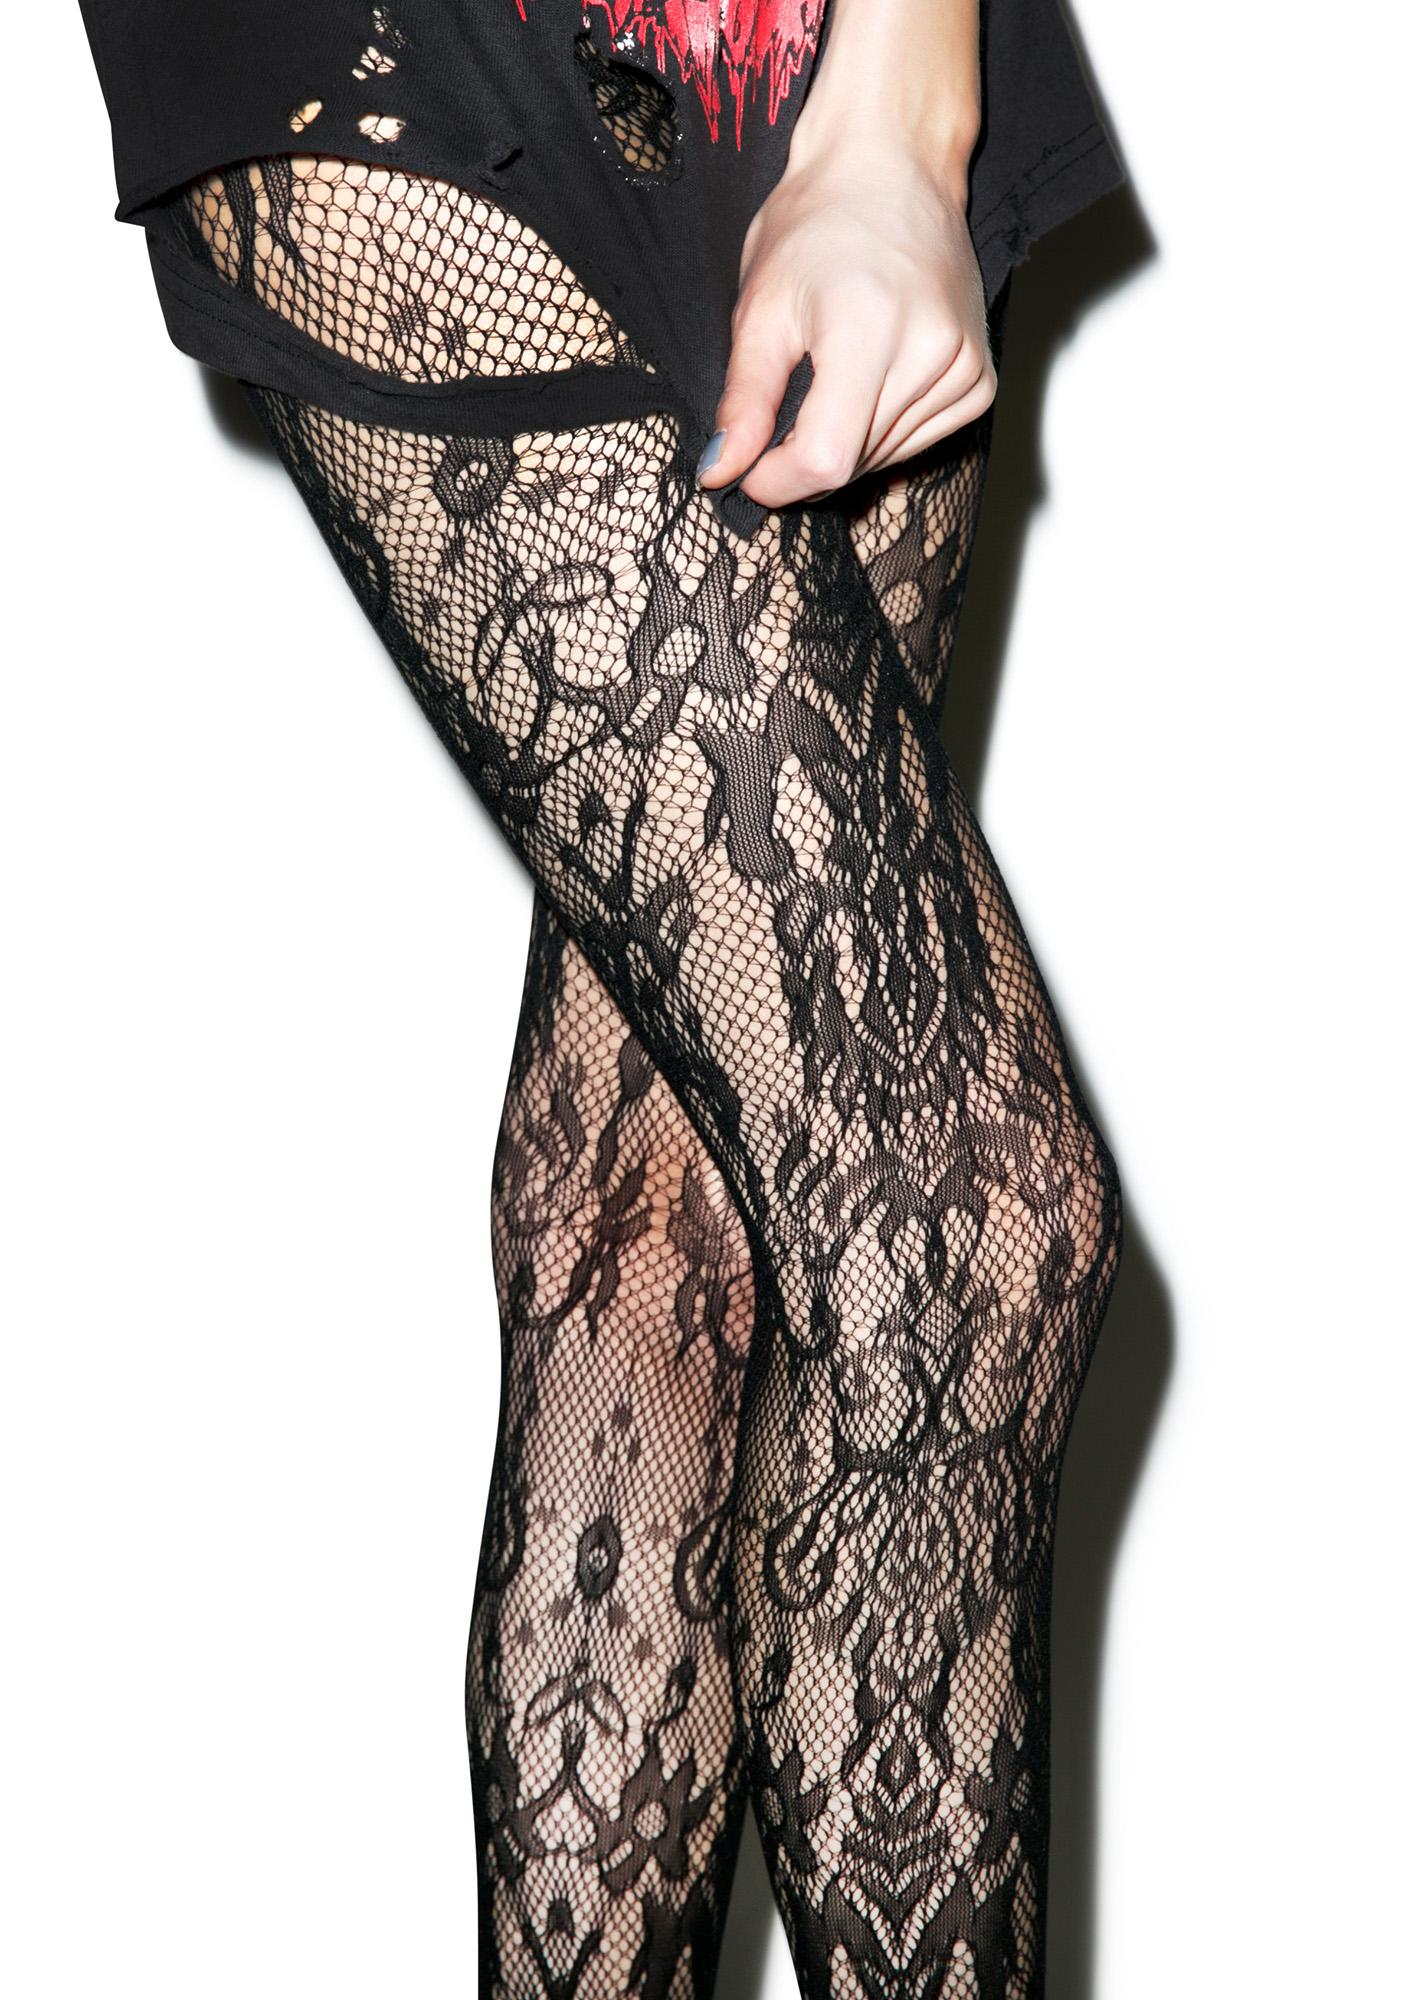 Lip Service Leggy Lace Tights